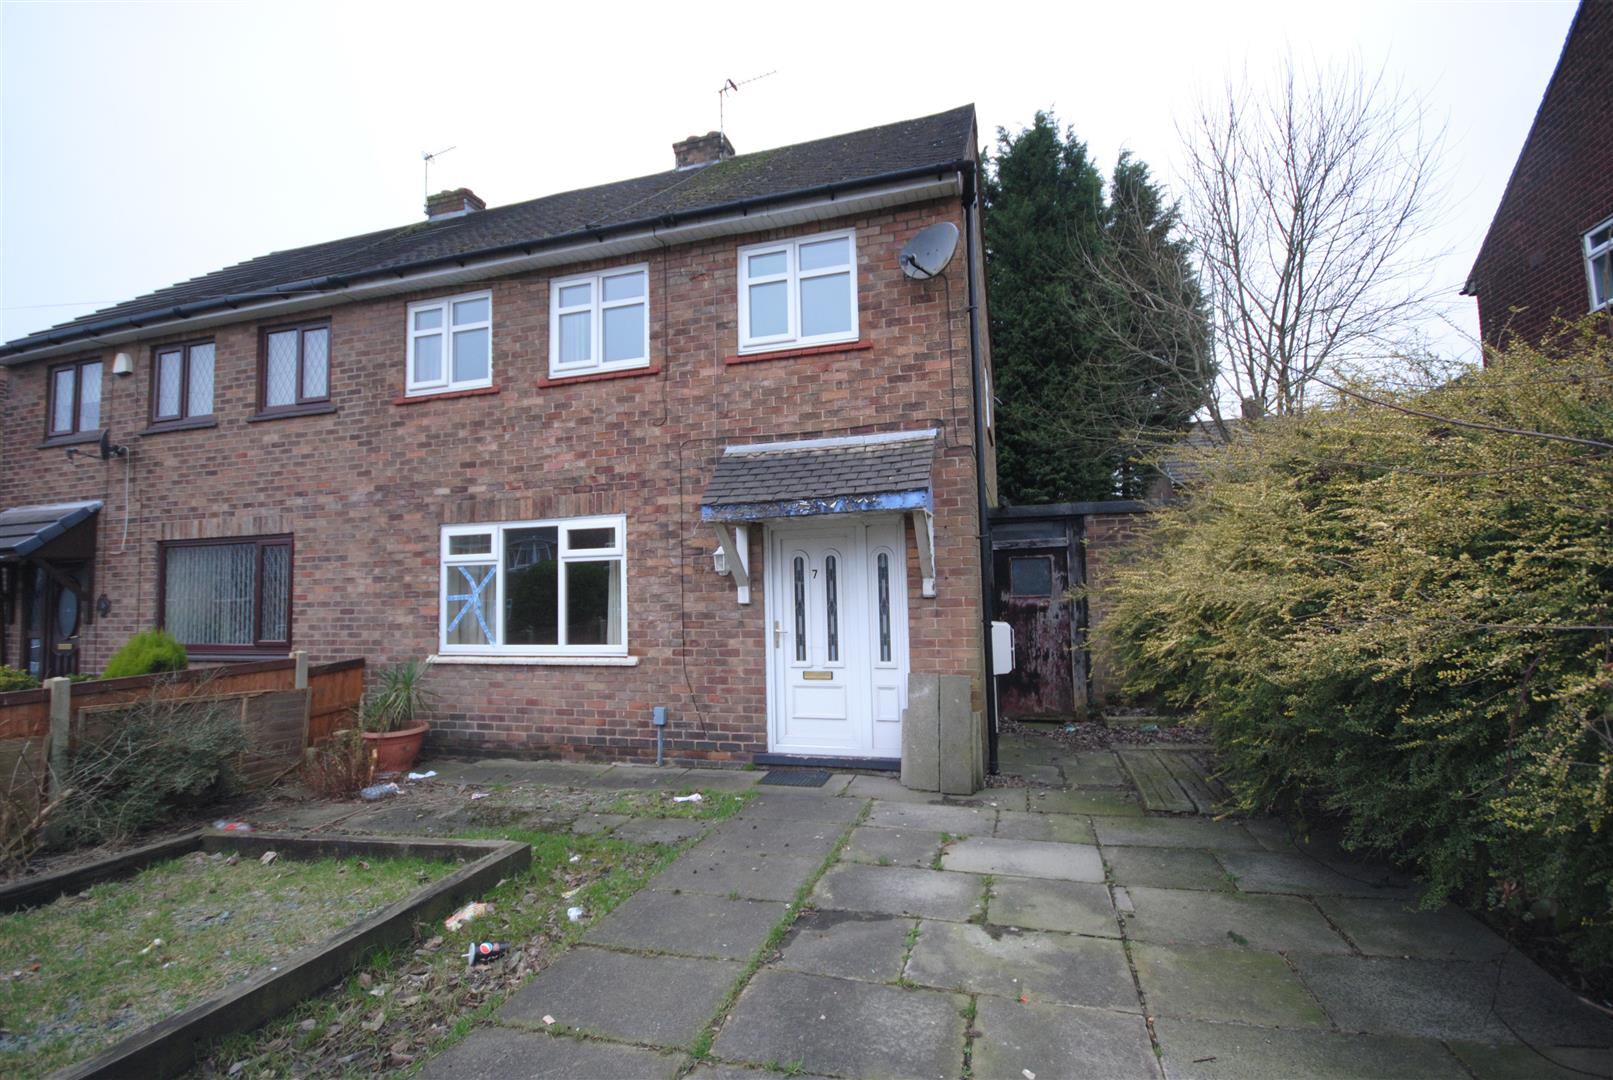 3 Bedrooms Semi Detached House for sale in Derwent Avenue, Higher Ince, Wigan